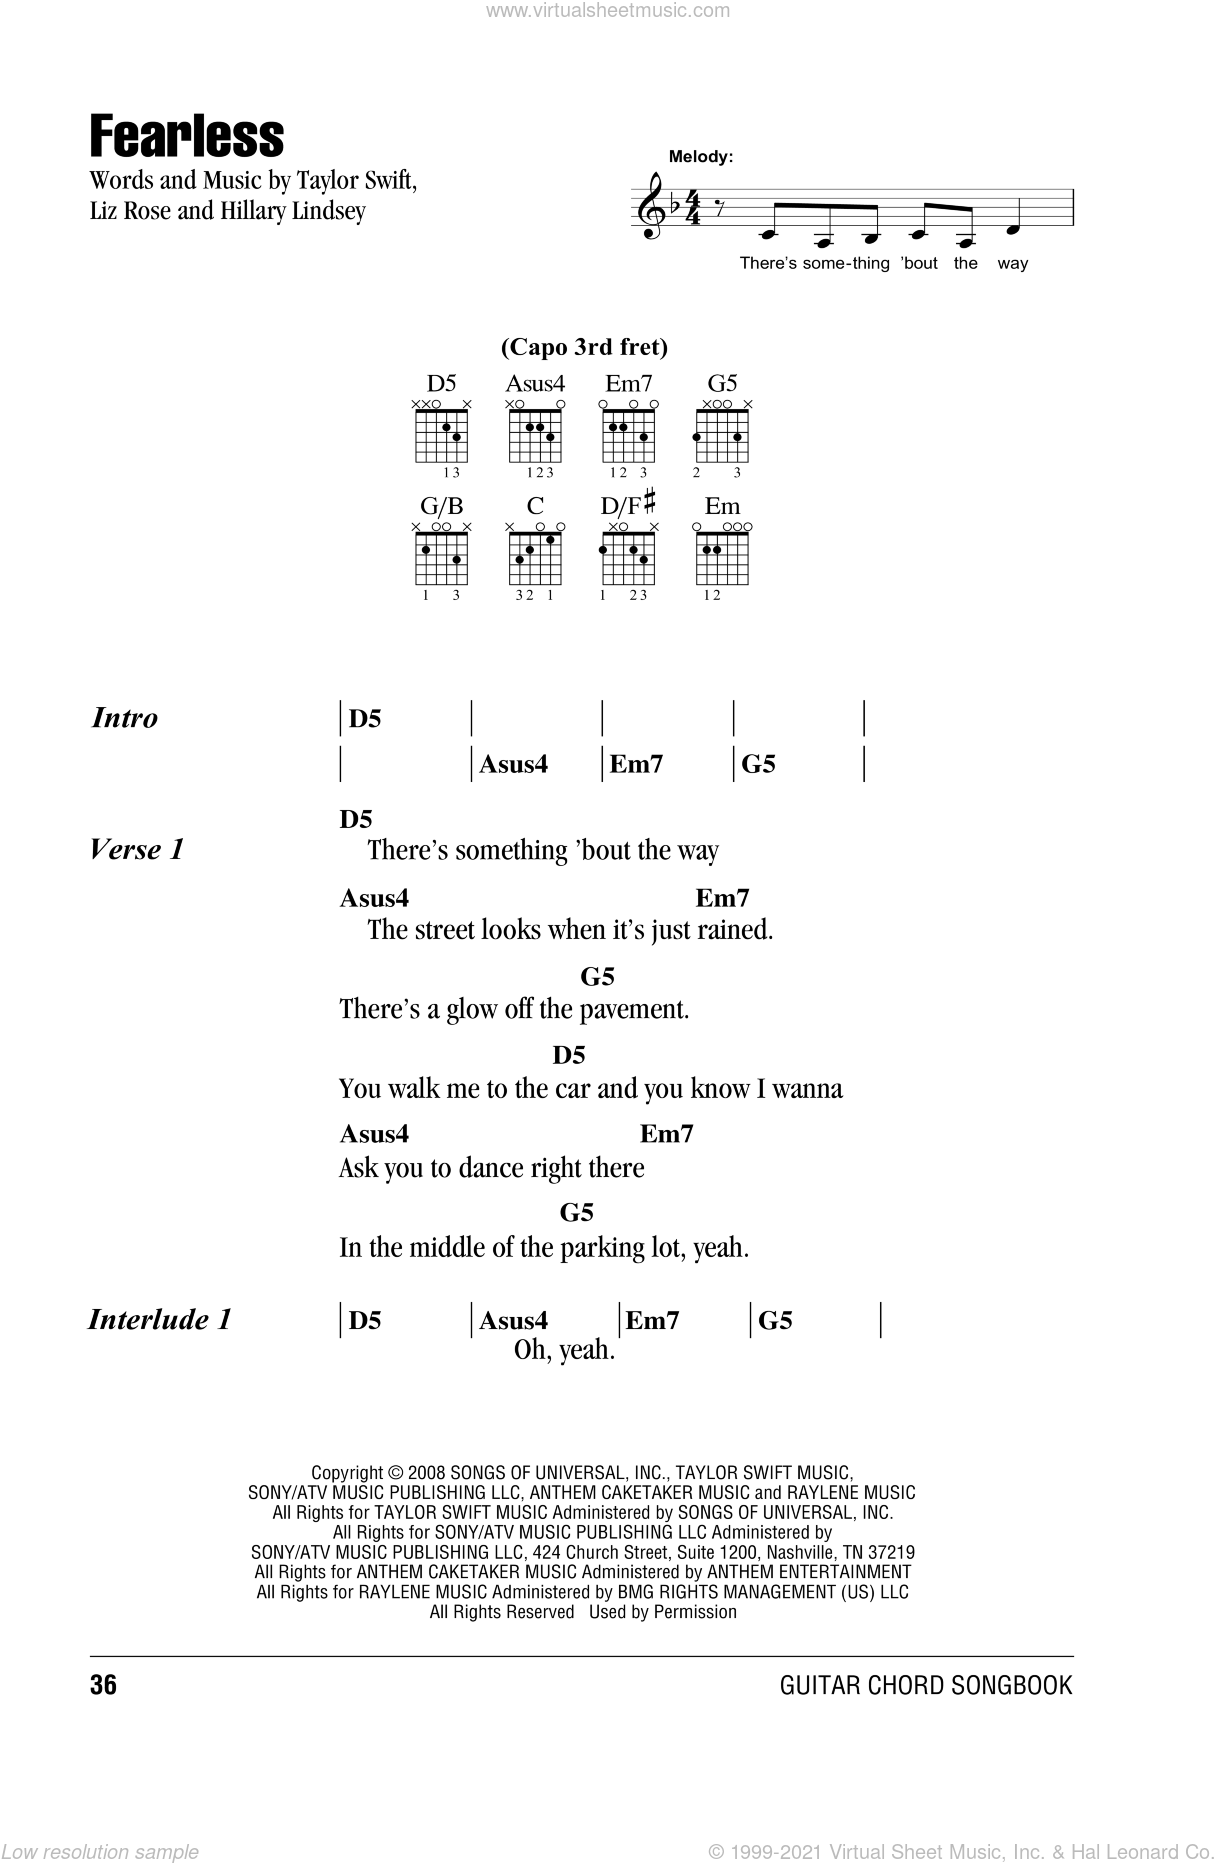 Swift - Fearless sheet music for guitar (chords) [PDF]